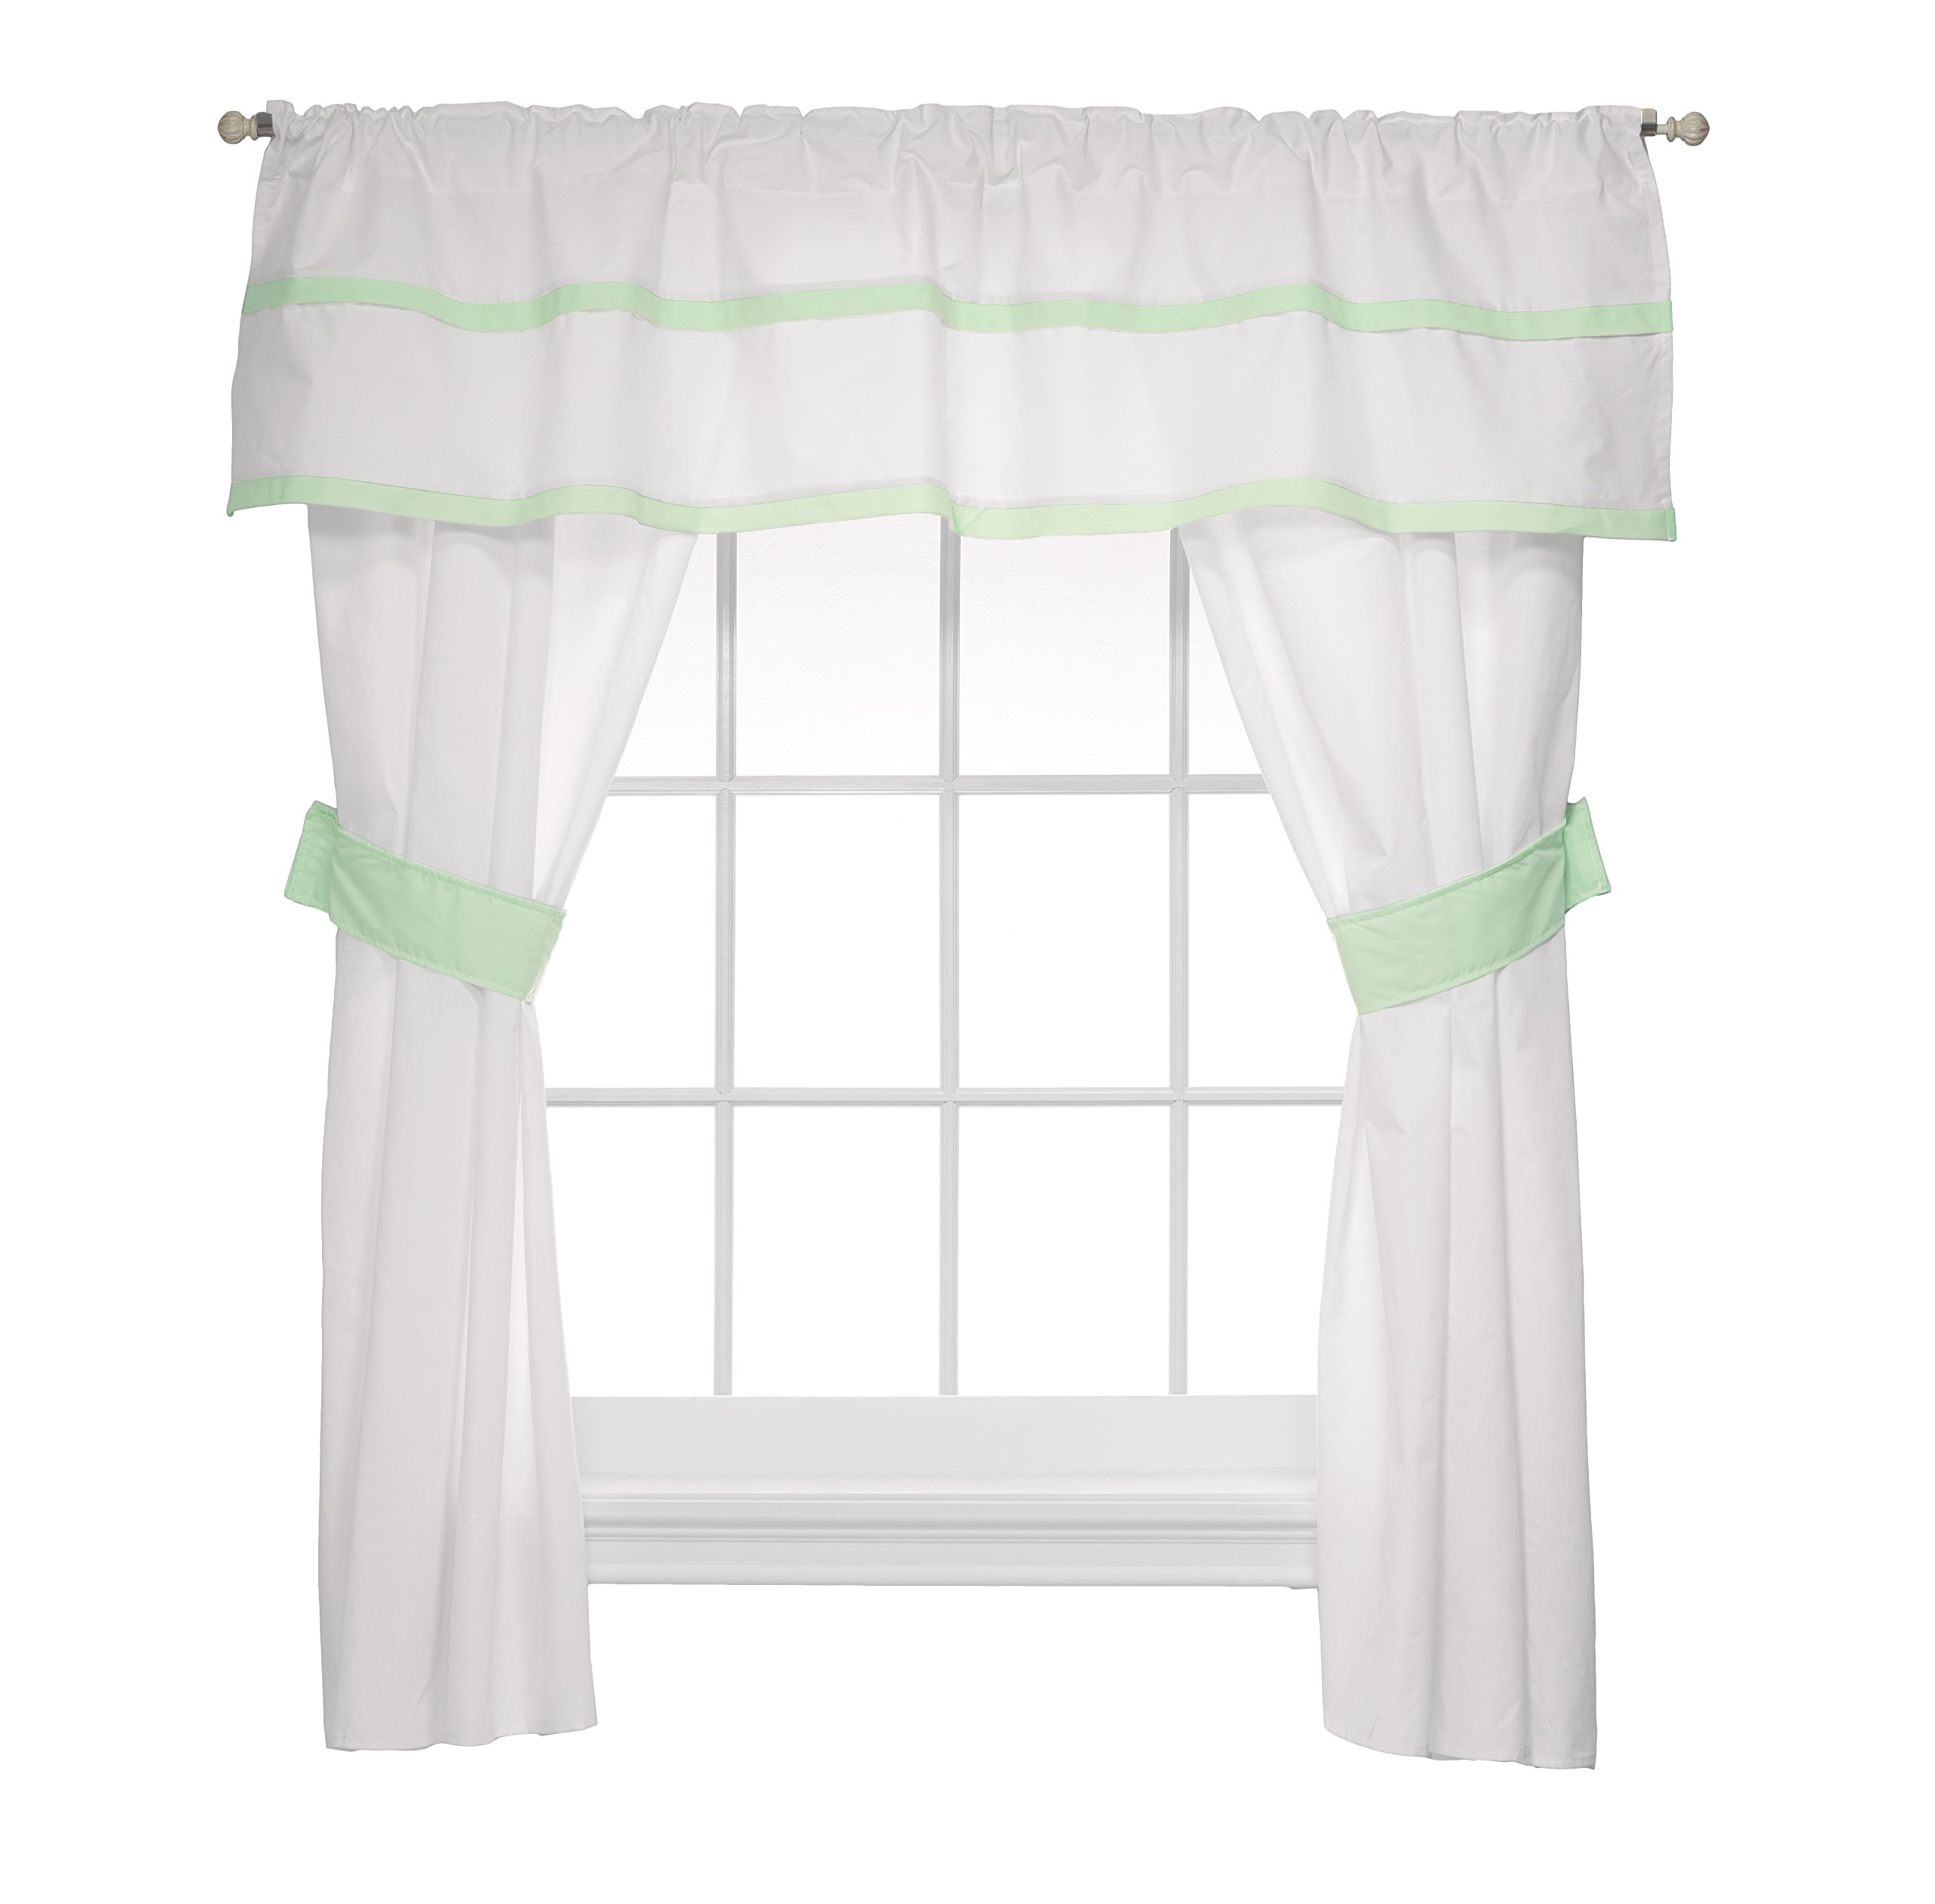 Baby Doll Medallion 5 Piece Window Valance and Curtain Set, Mint by Baby Doll